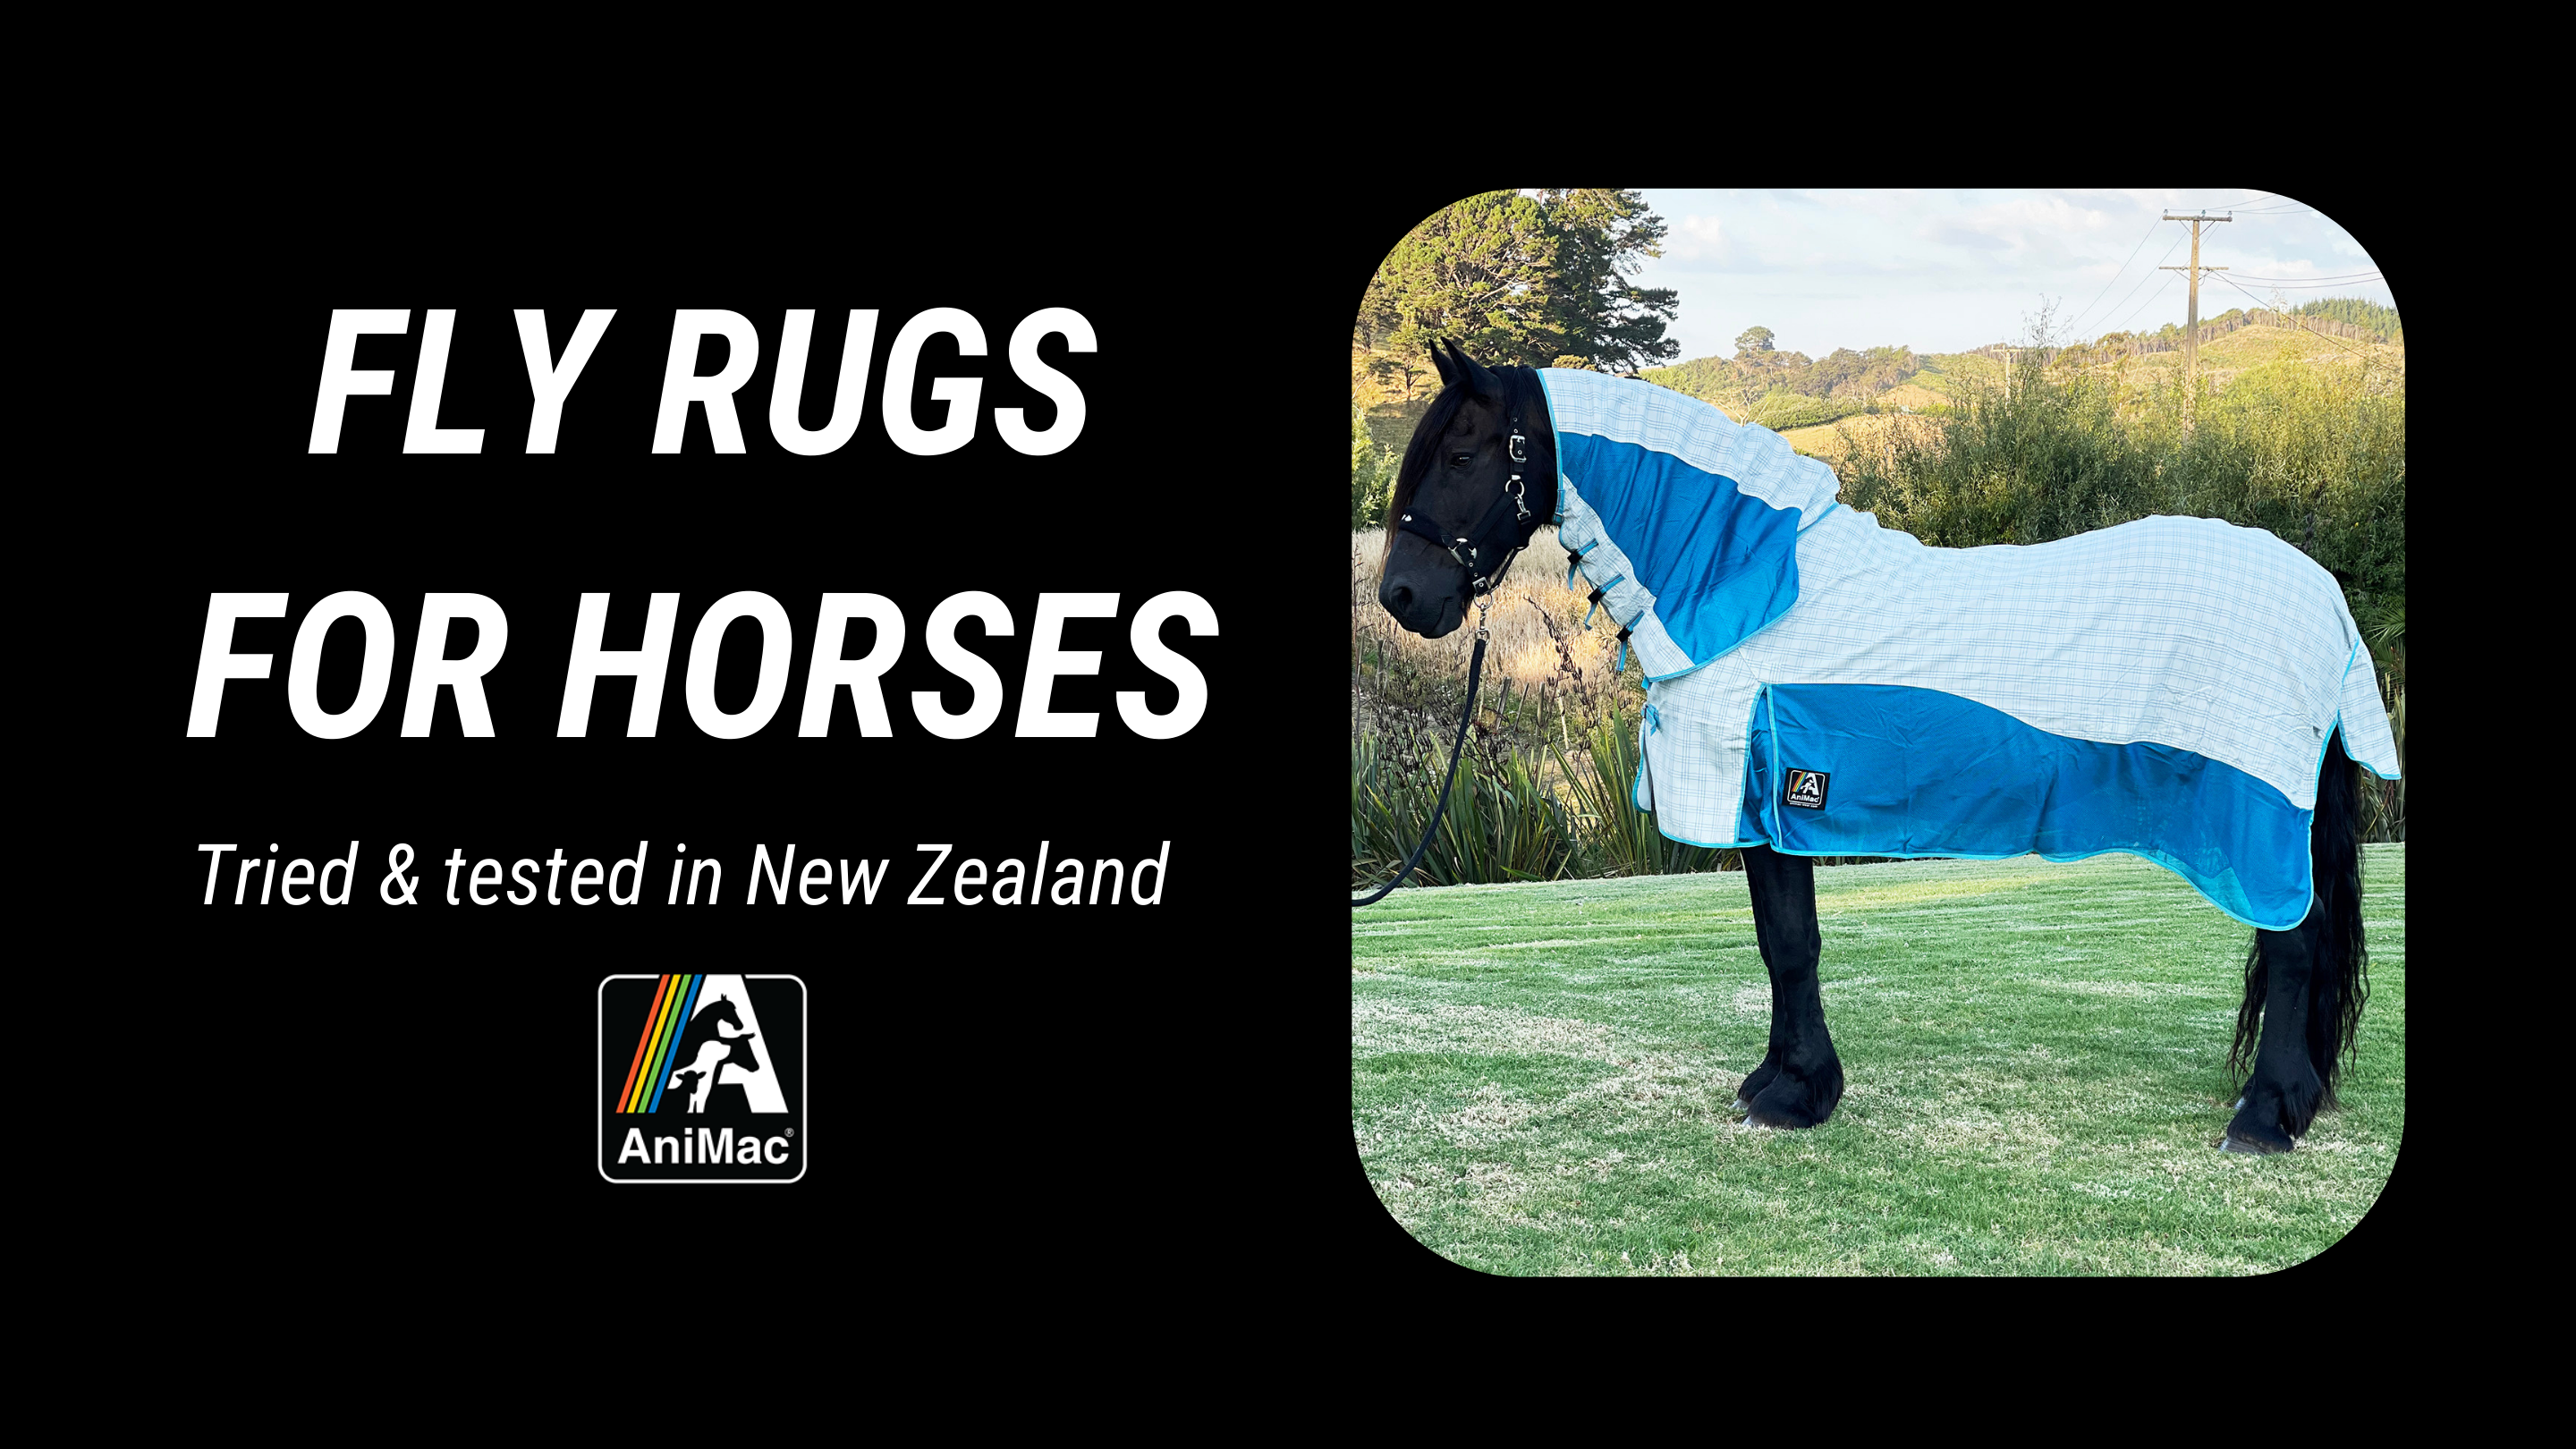 Horse Fly Rugs by AniMac